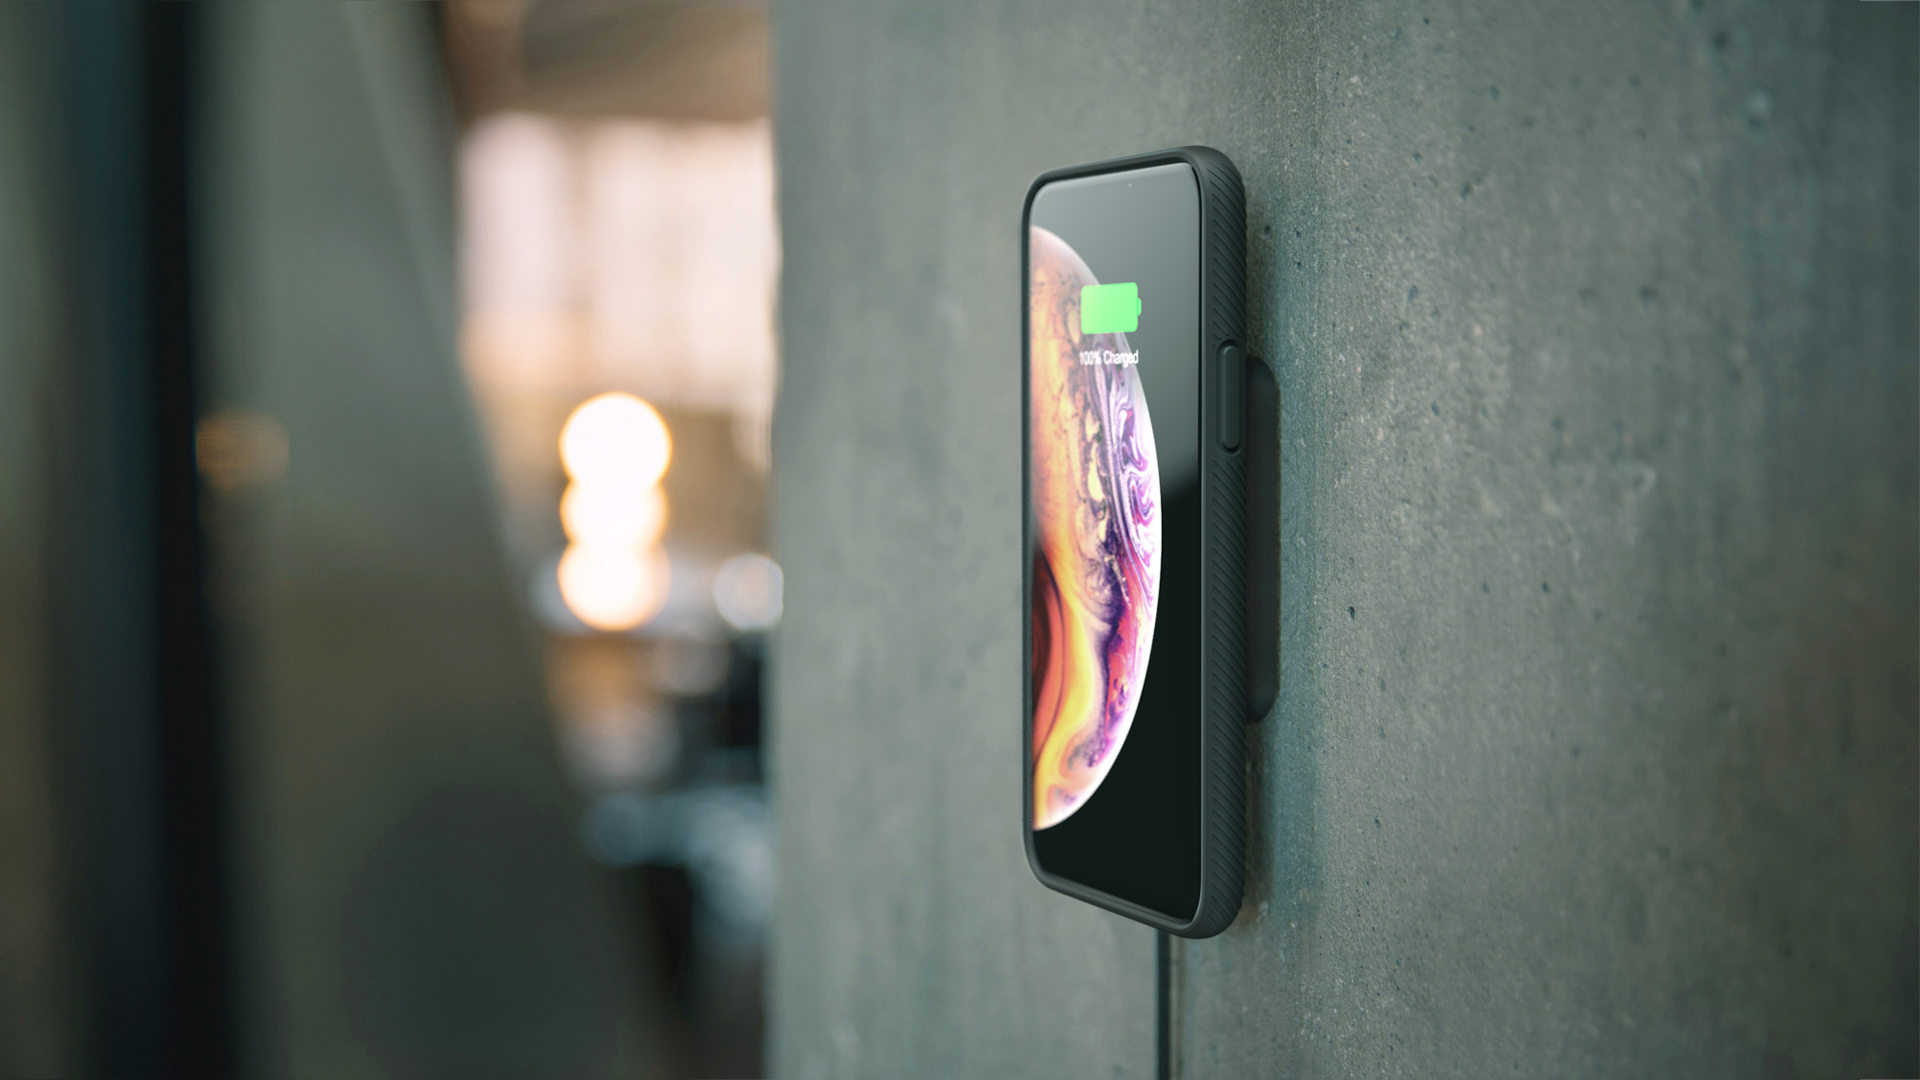 magnetic_wall_mount_xvida_review